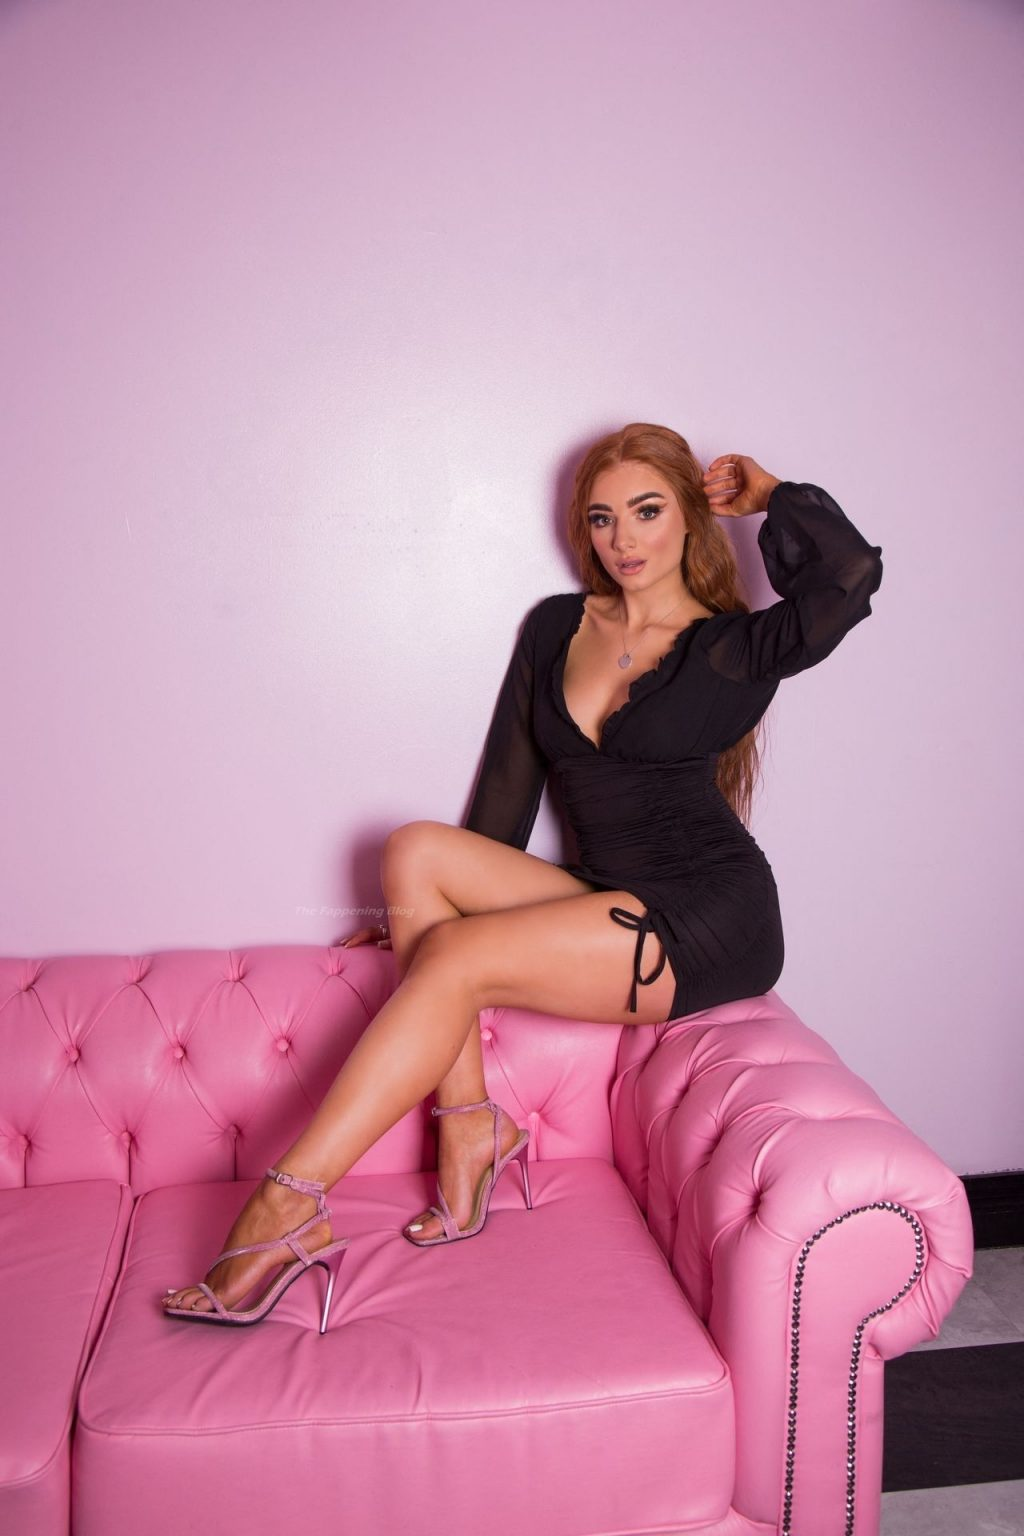 Leggy Summer Harte-Felce Poses in a New Photoshoot in Essex (11 Photos)